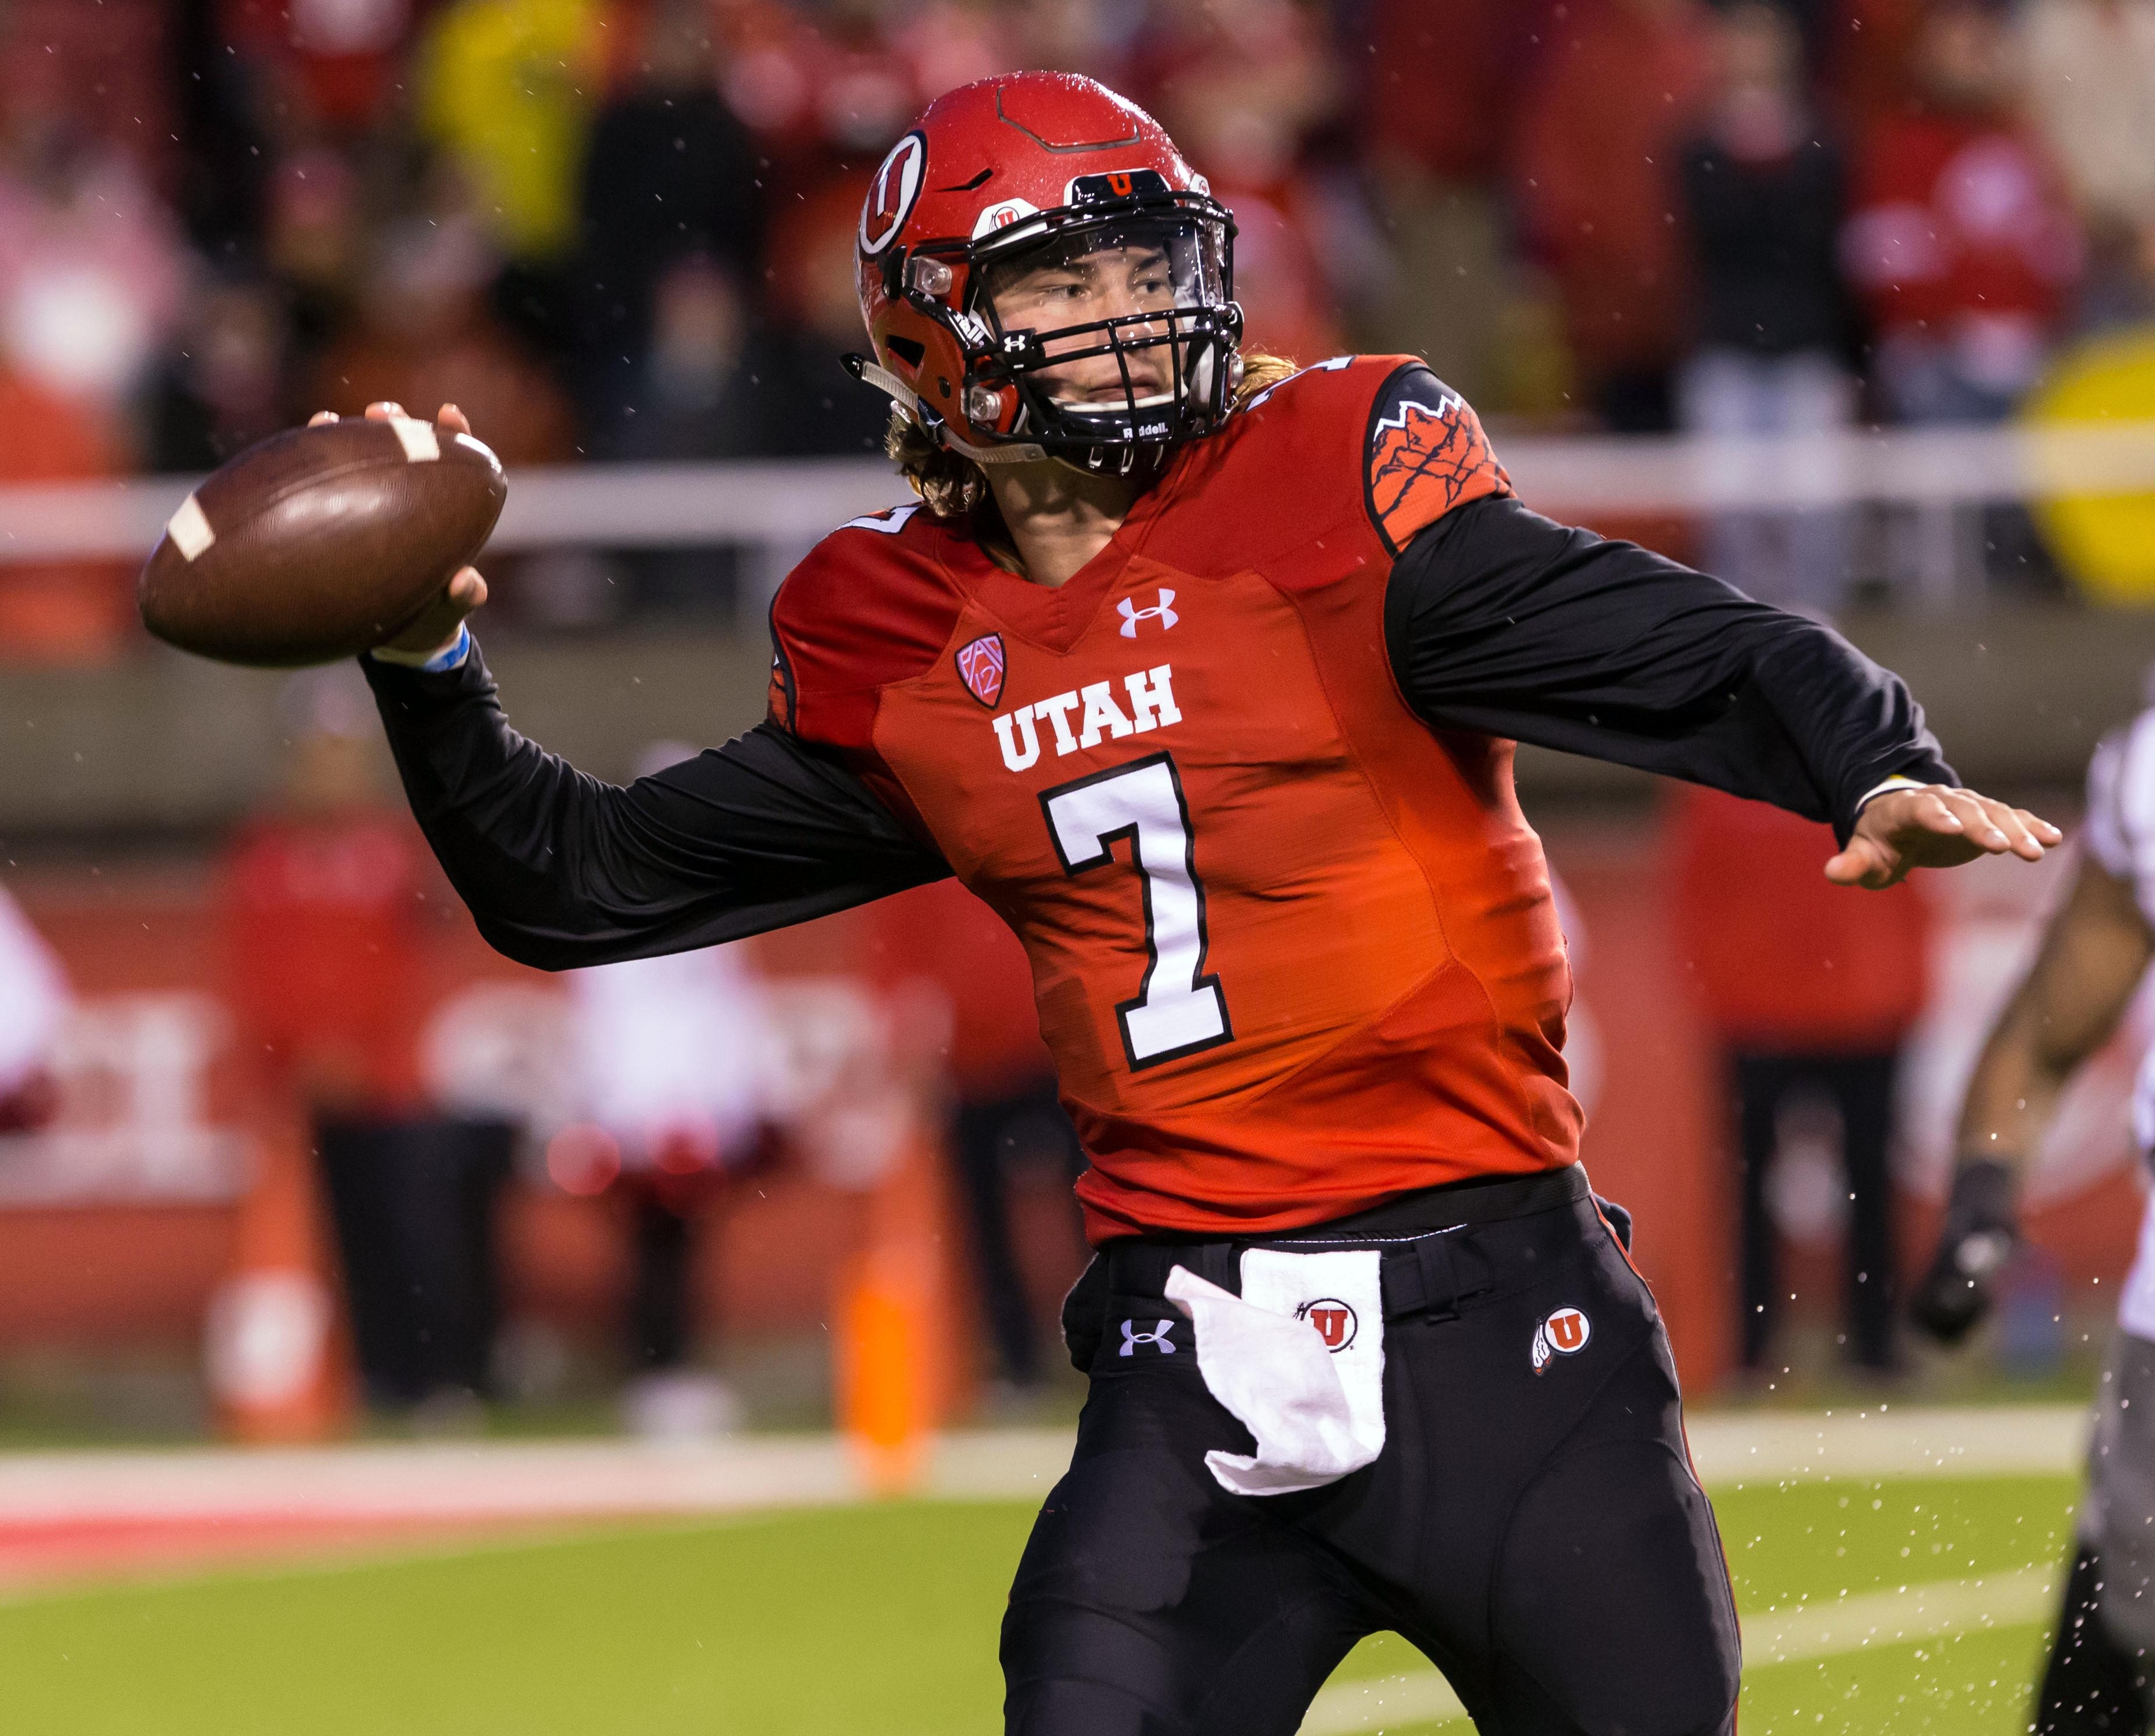 Utah junior quarterback Travis Wilson leads his 3-1 Utes into the Rose Bowl to take on undefeated UCLA.